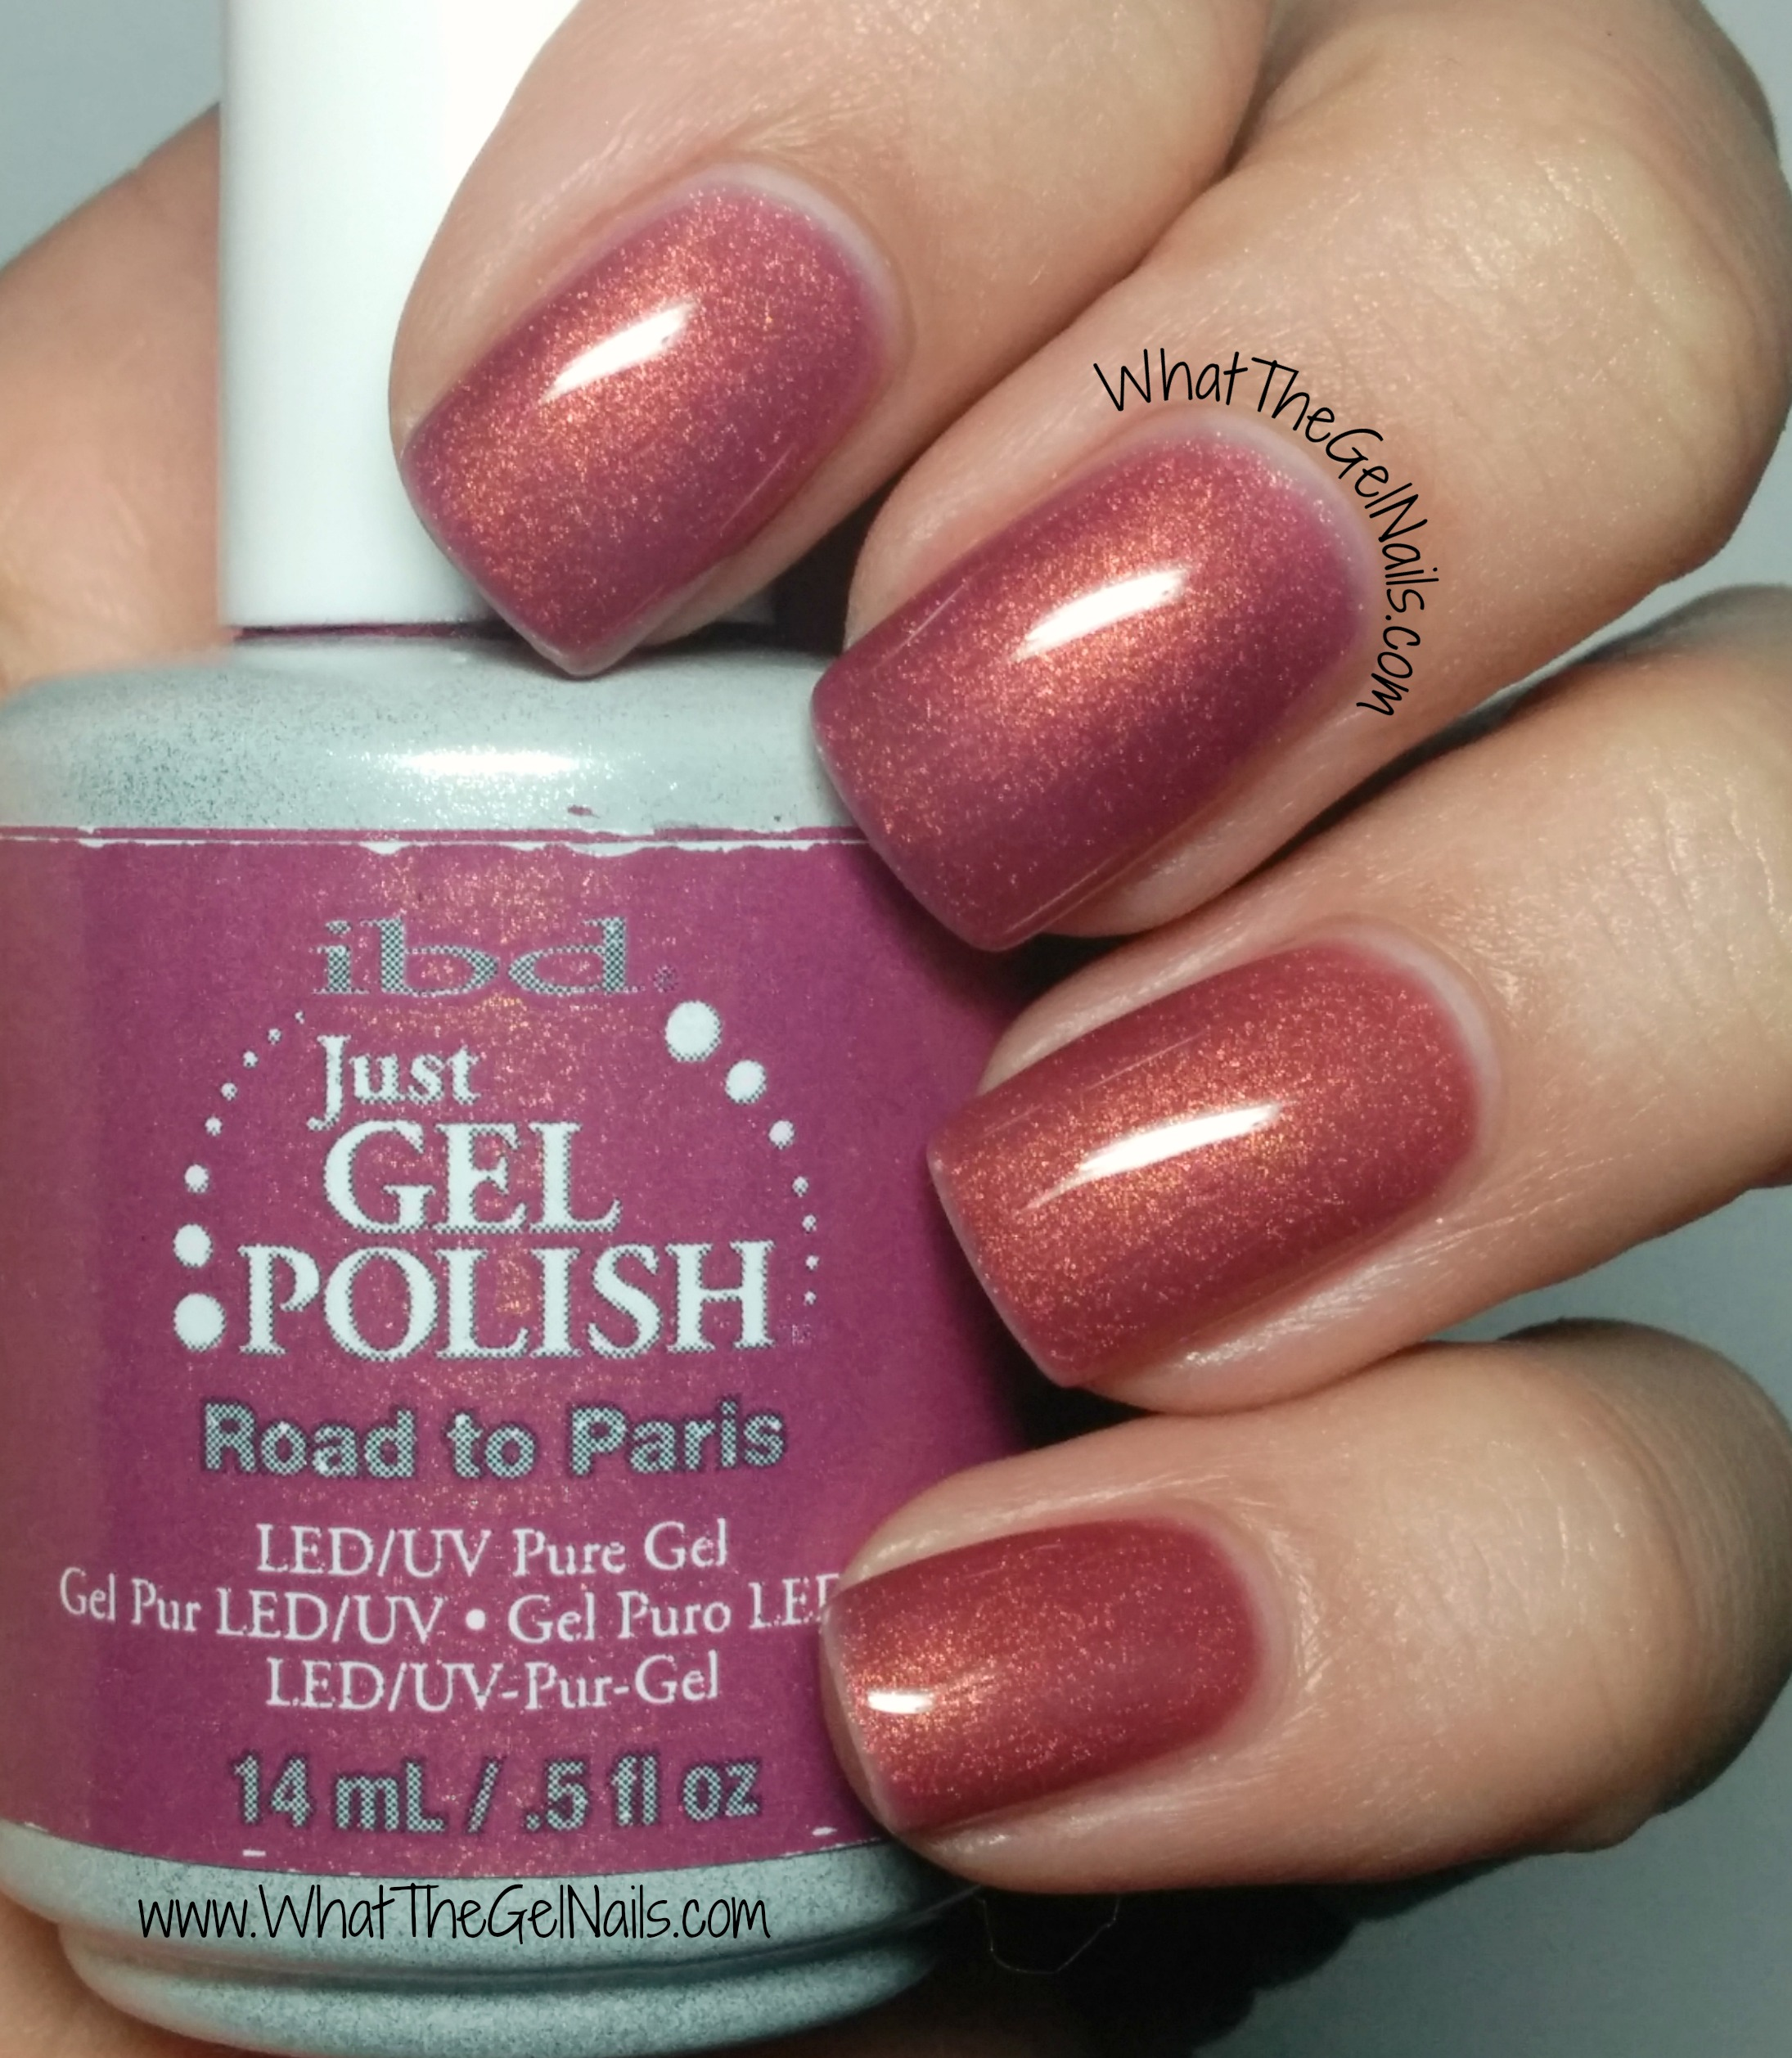 Gel Nail Polish Colors: 4 Pink IBD Just Gel Nail Polish Colors